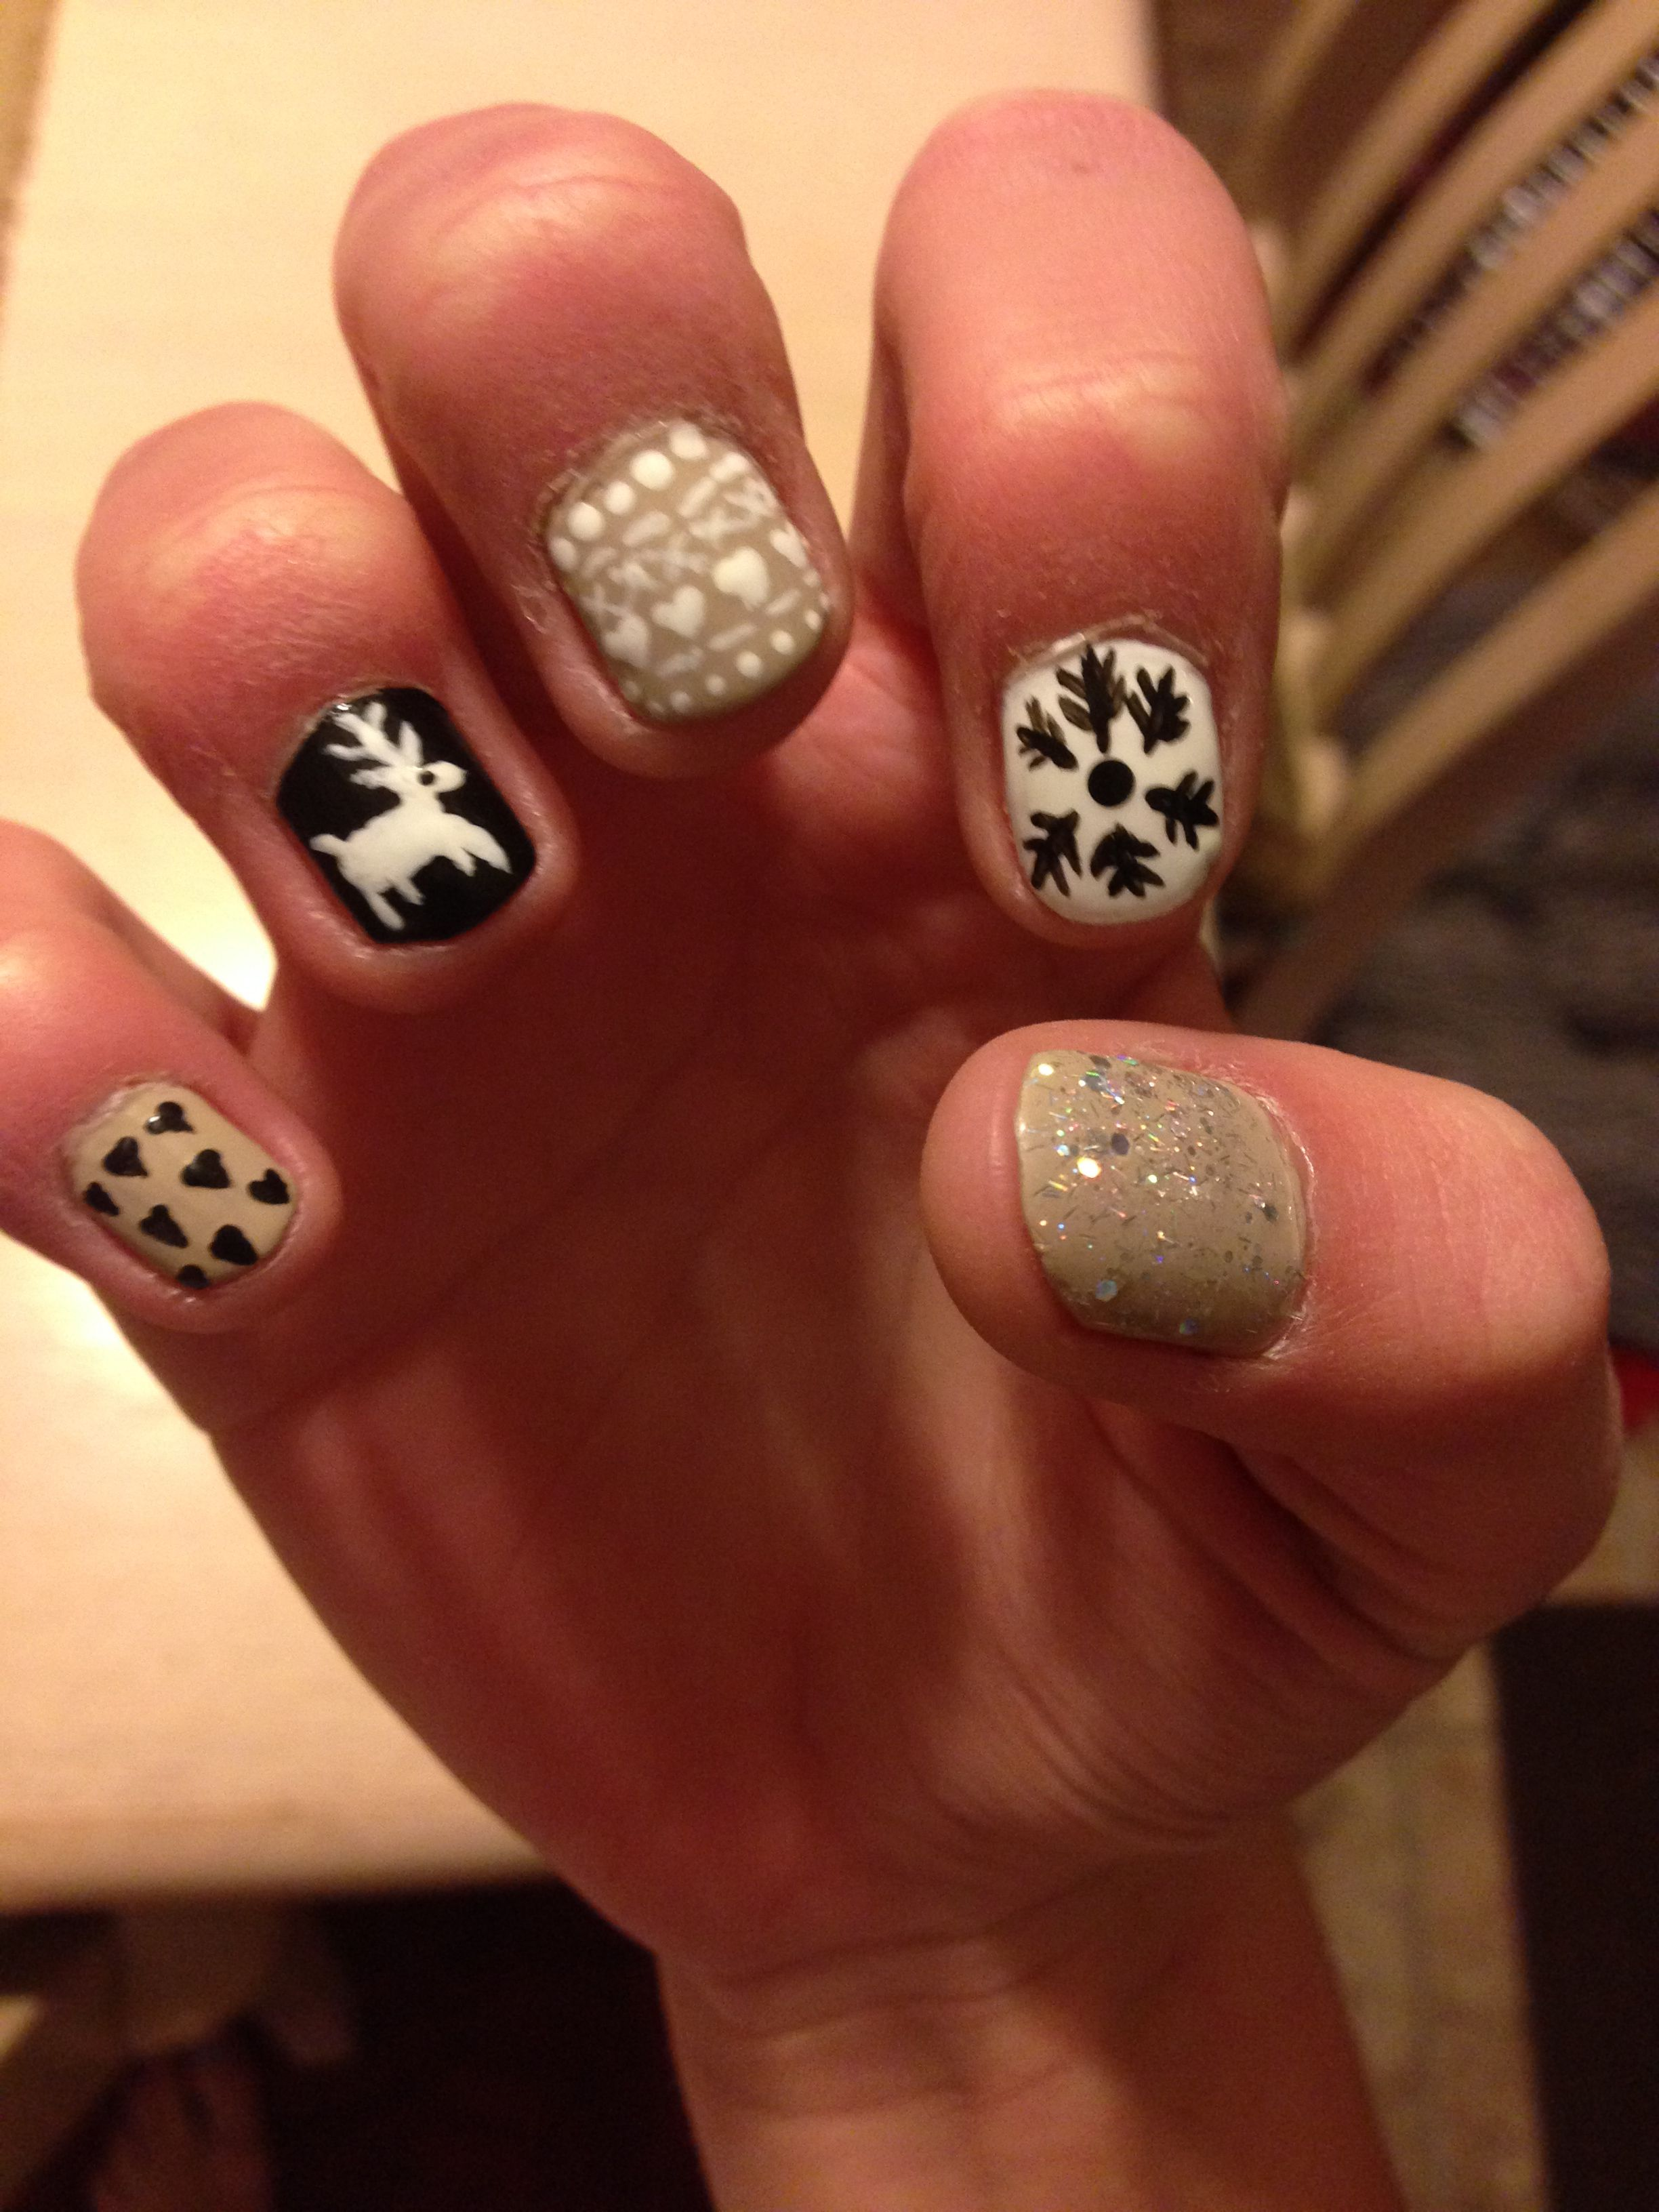 Love my nails so much! Thanks Mandy!! @Mandy Brooke